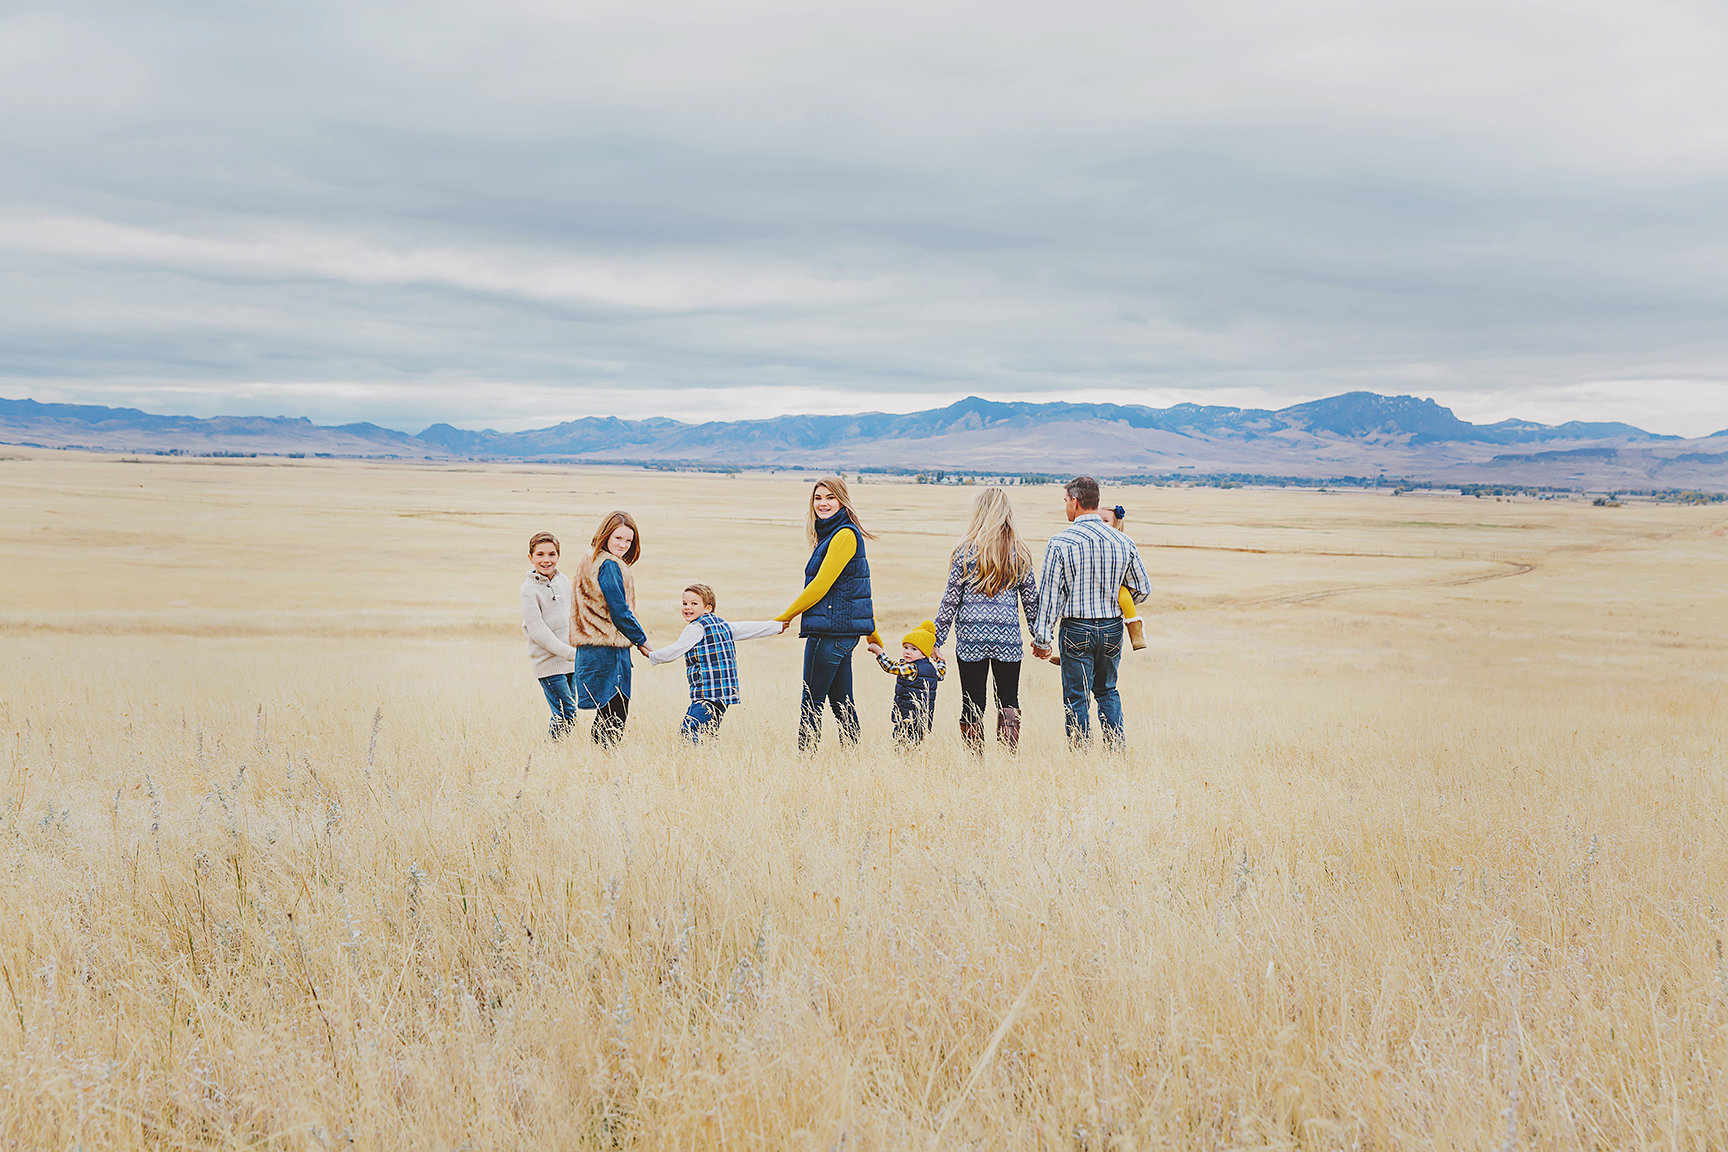 a family of 8 in a field showing fall colors, layers and testures